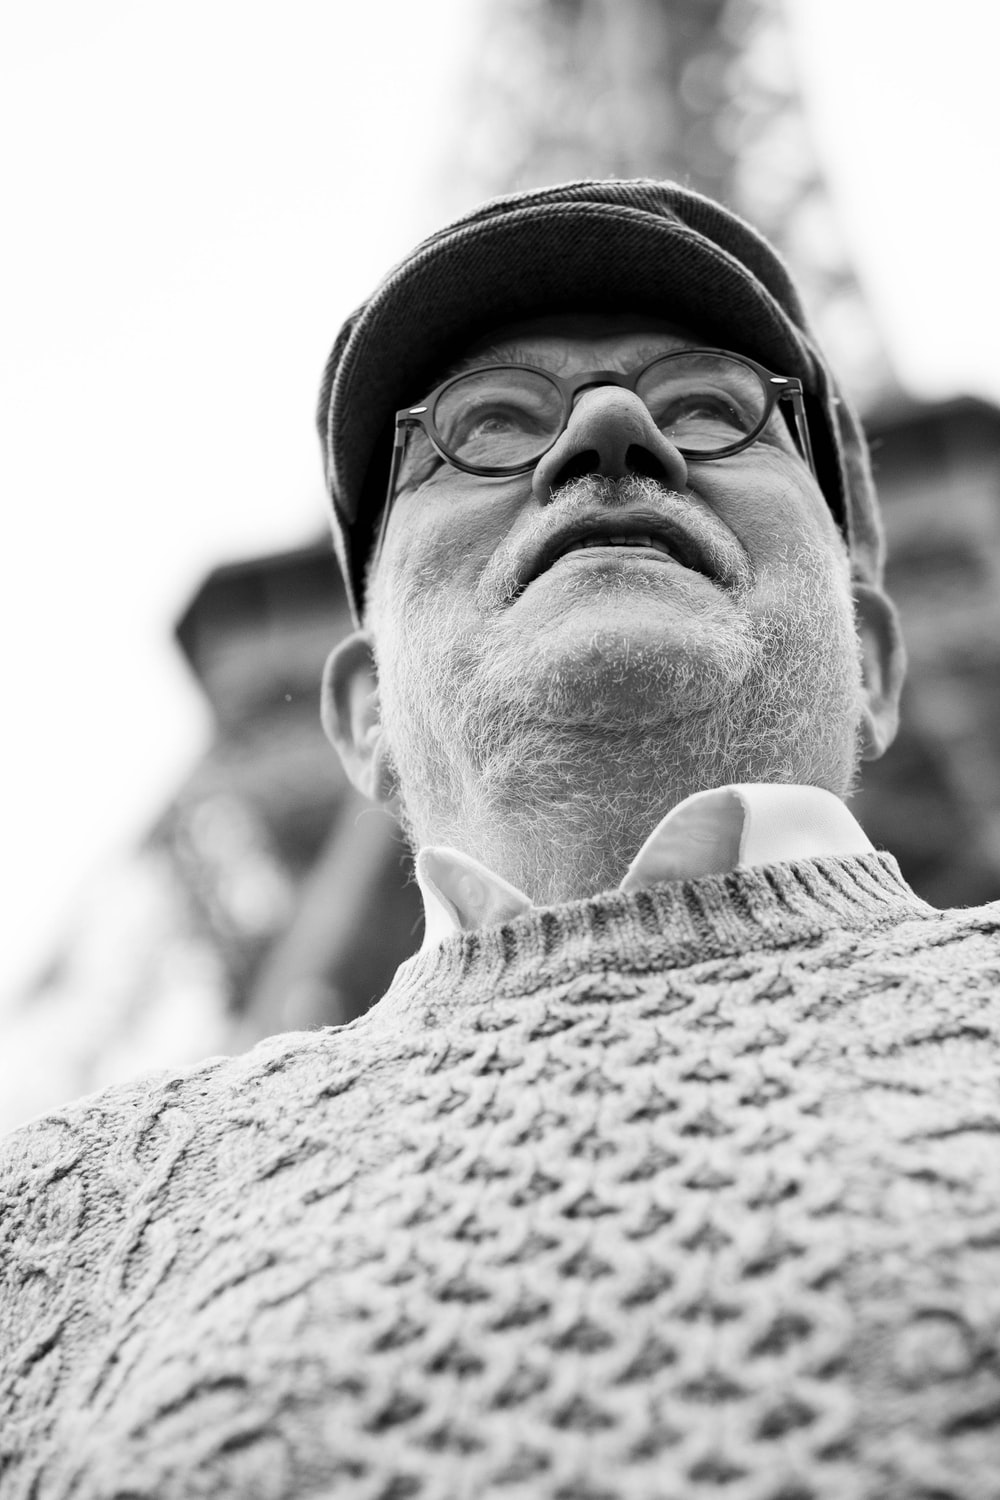 low angle view of man wearing hat and sweater under Eiffel Tower